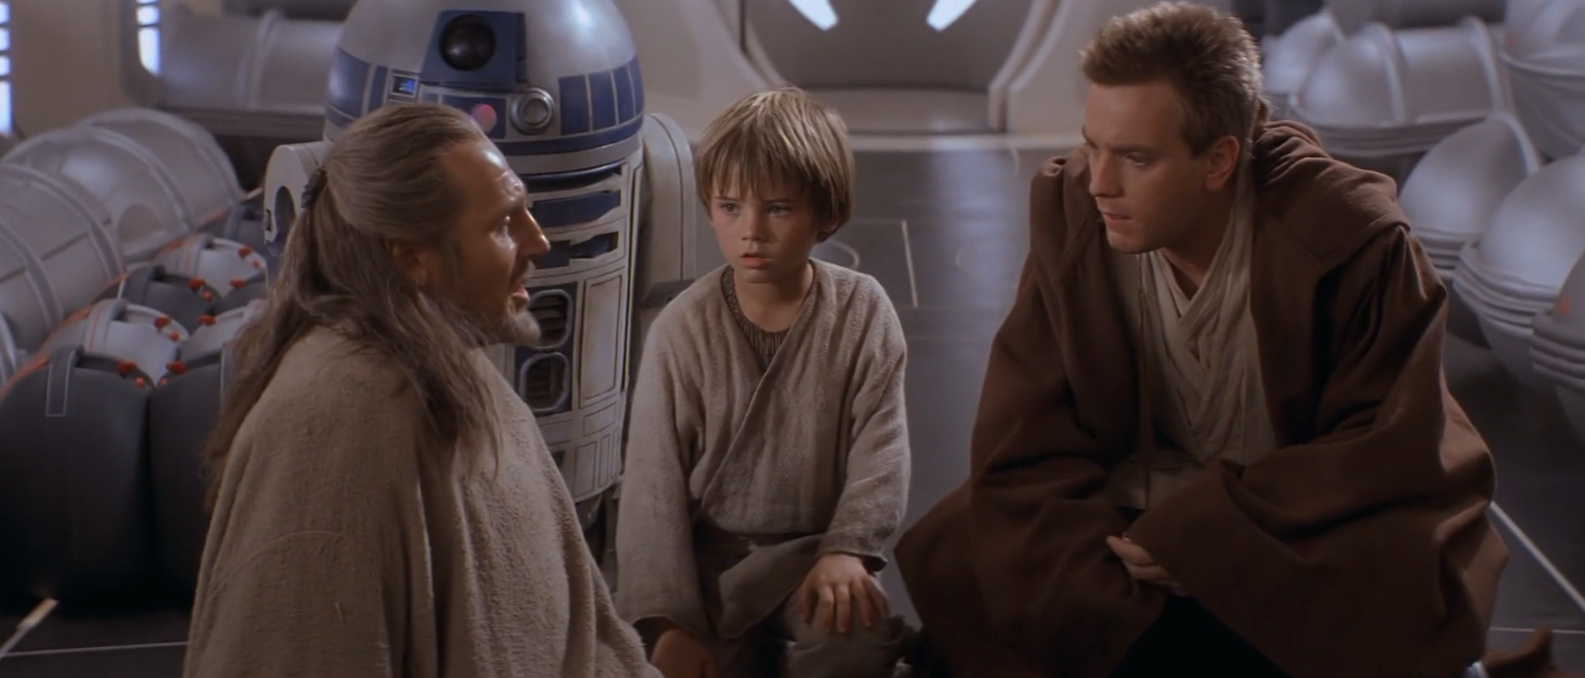 Star Wars: Episode I - The Phantom Menace Movie Review